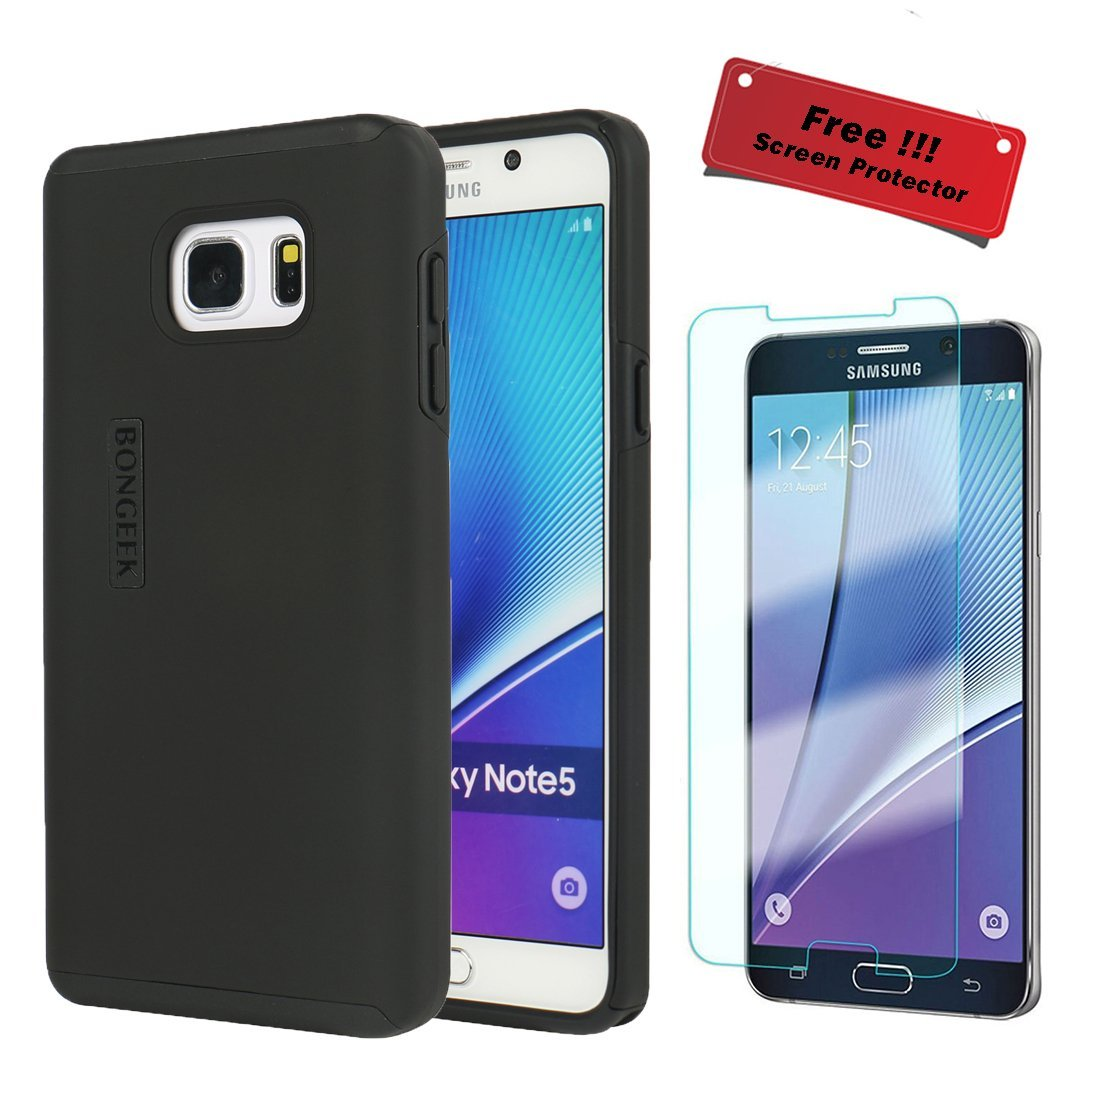 Samsung Galaxy Note 5 Case, FREE Tempered Glass Galaxy Note 5 Screen Protector WORTH $15 While Stocks Last, BONGEEK Dual Layer Hybrid Protective Case (Black)